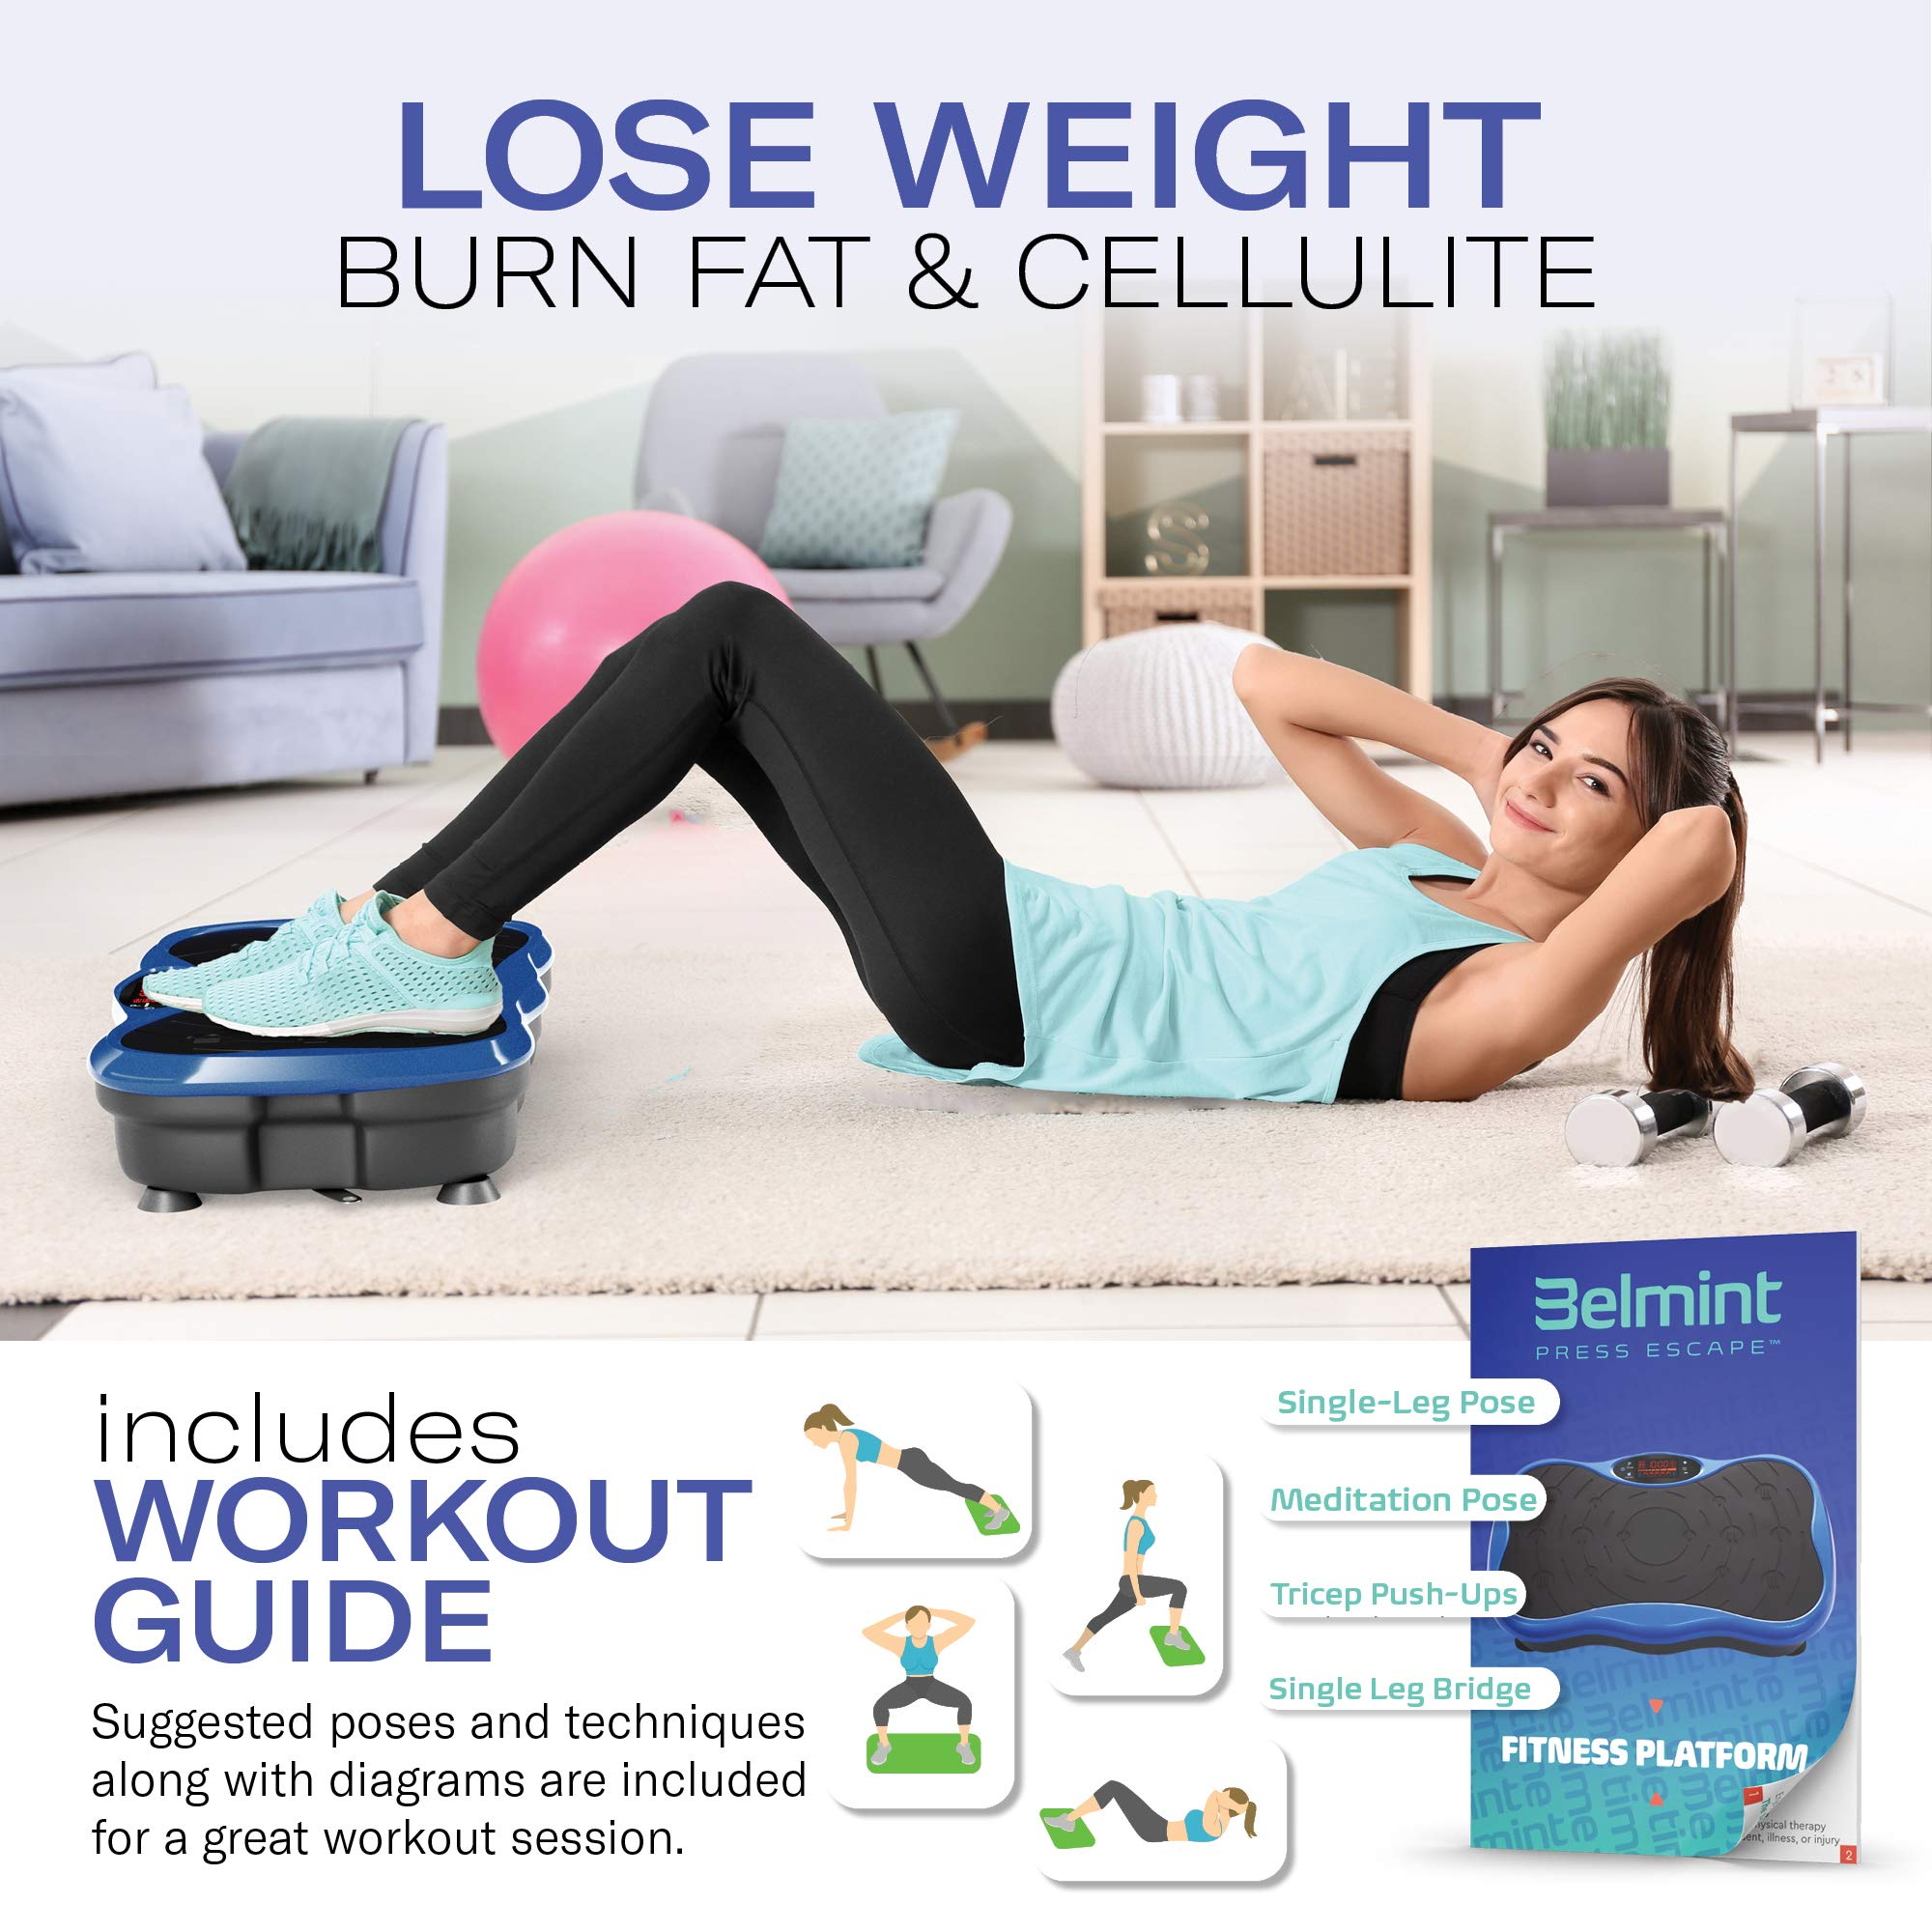 Toning Core Legs Back Lose Fat Belmint Vibration Plate Exercise Machine Squat Mini Fitness Board with 2 Resistance Bands Weight Loss Home Training Equipment Platform for Full Body Workout